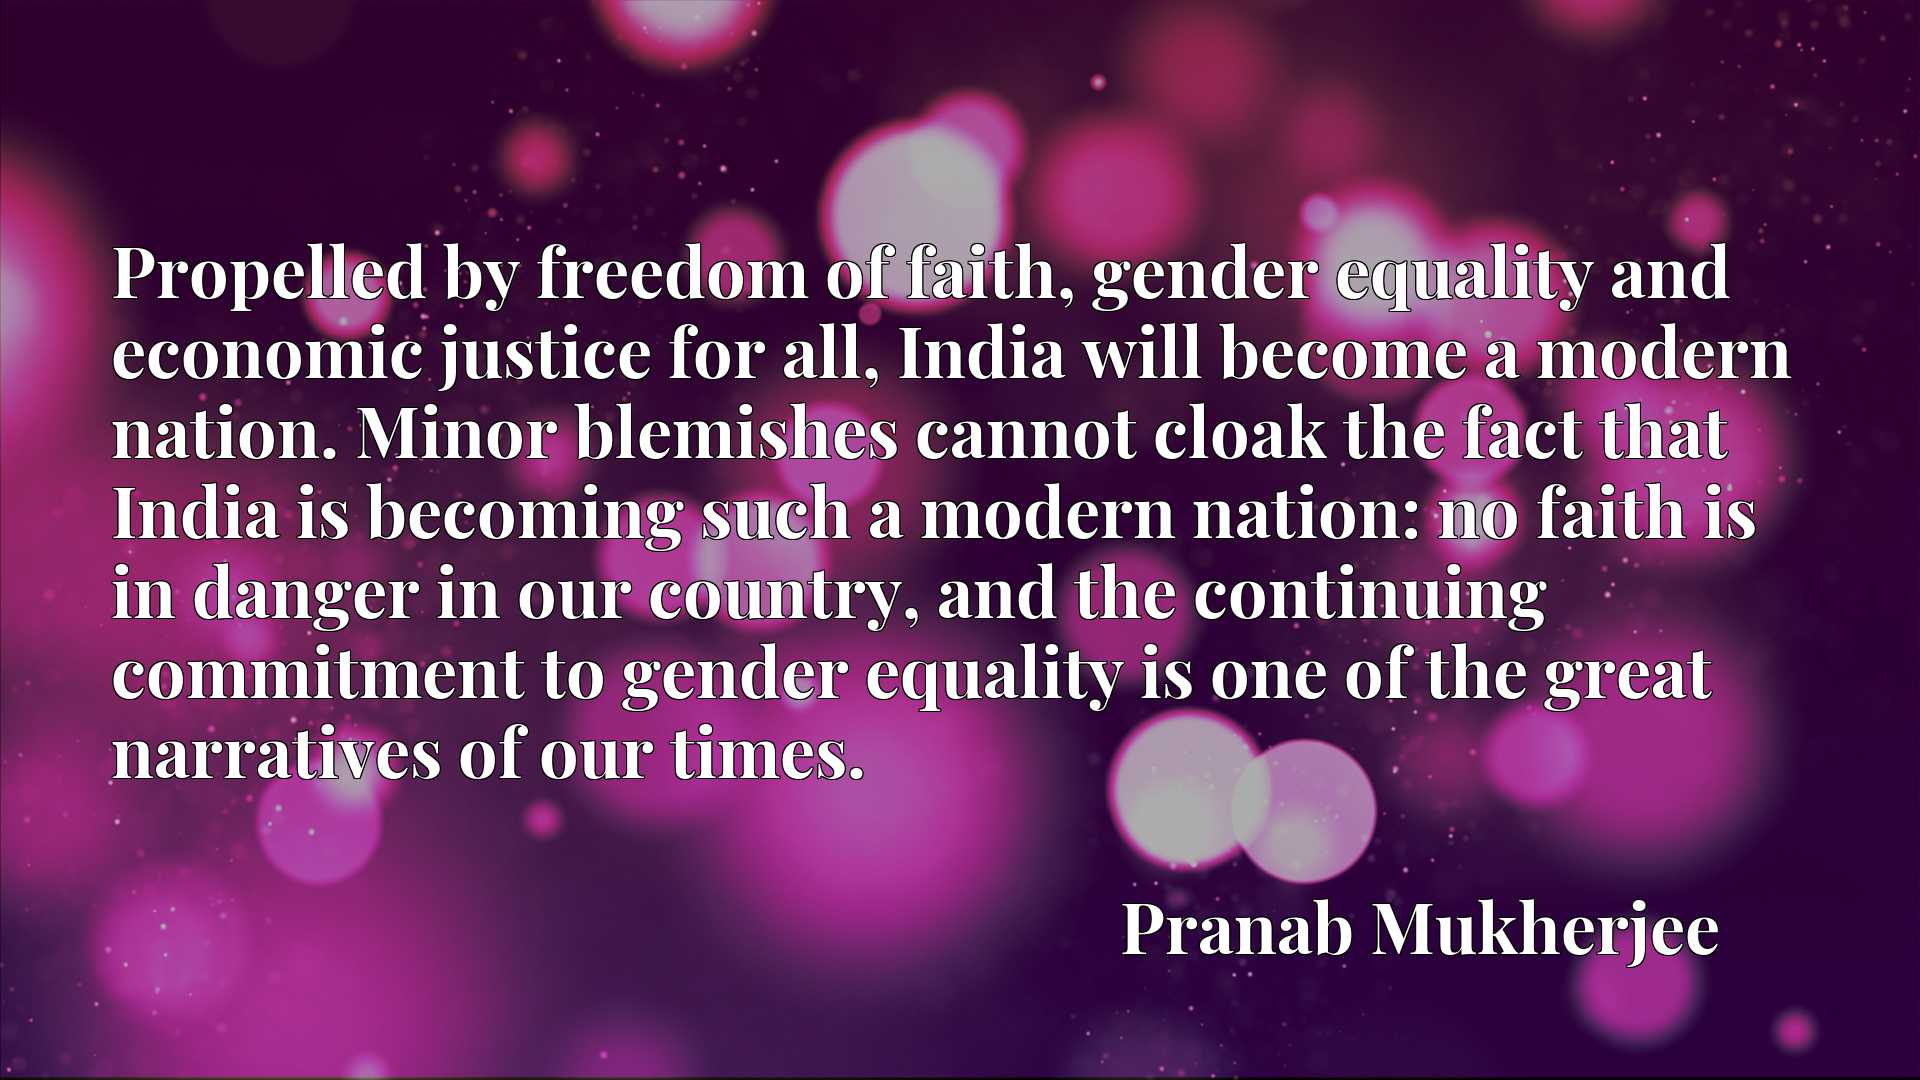 Propelled by freedom of faith, gender equality and economic justice for all, India will become a modern nation. Minor blemishes cannot cloak the fact that India is becoming such a modern nation: no faith is in danger in our country, and the continuing commitment to gender equality is one of the great narratives of our times.